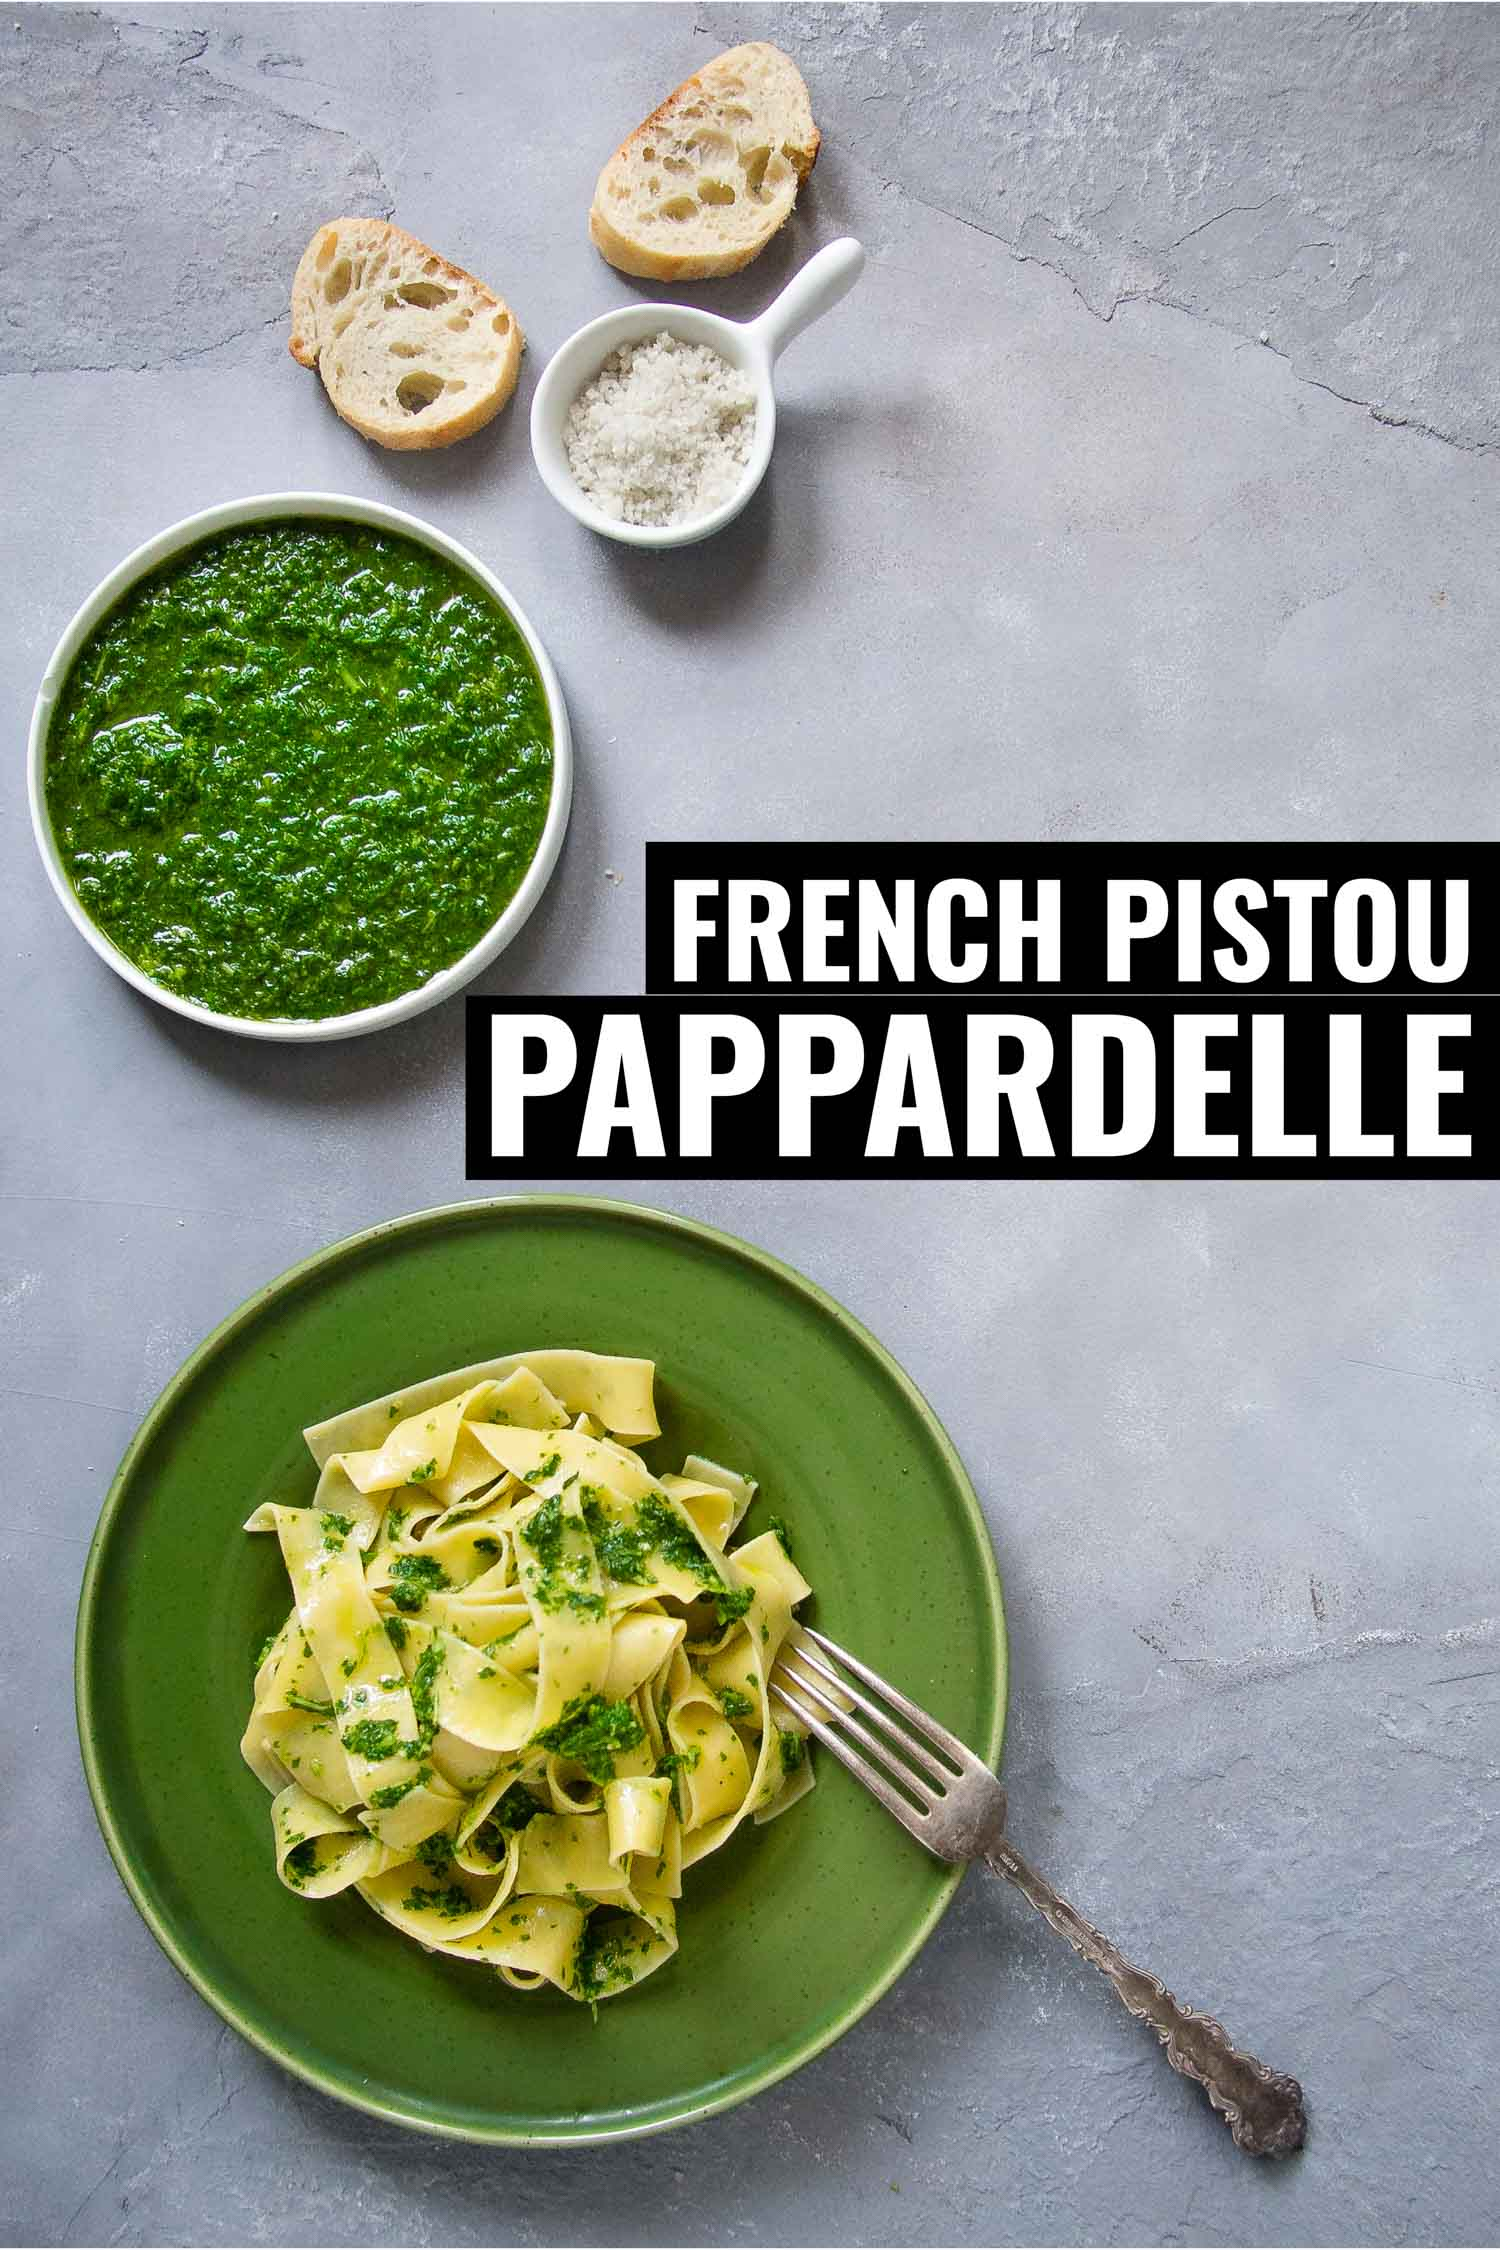 French pistou with pappardelle pasta